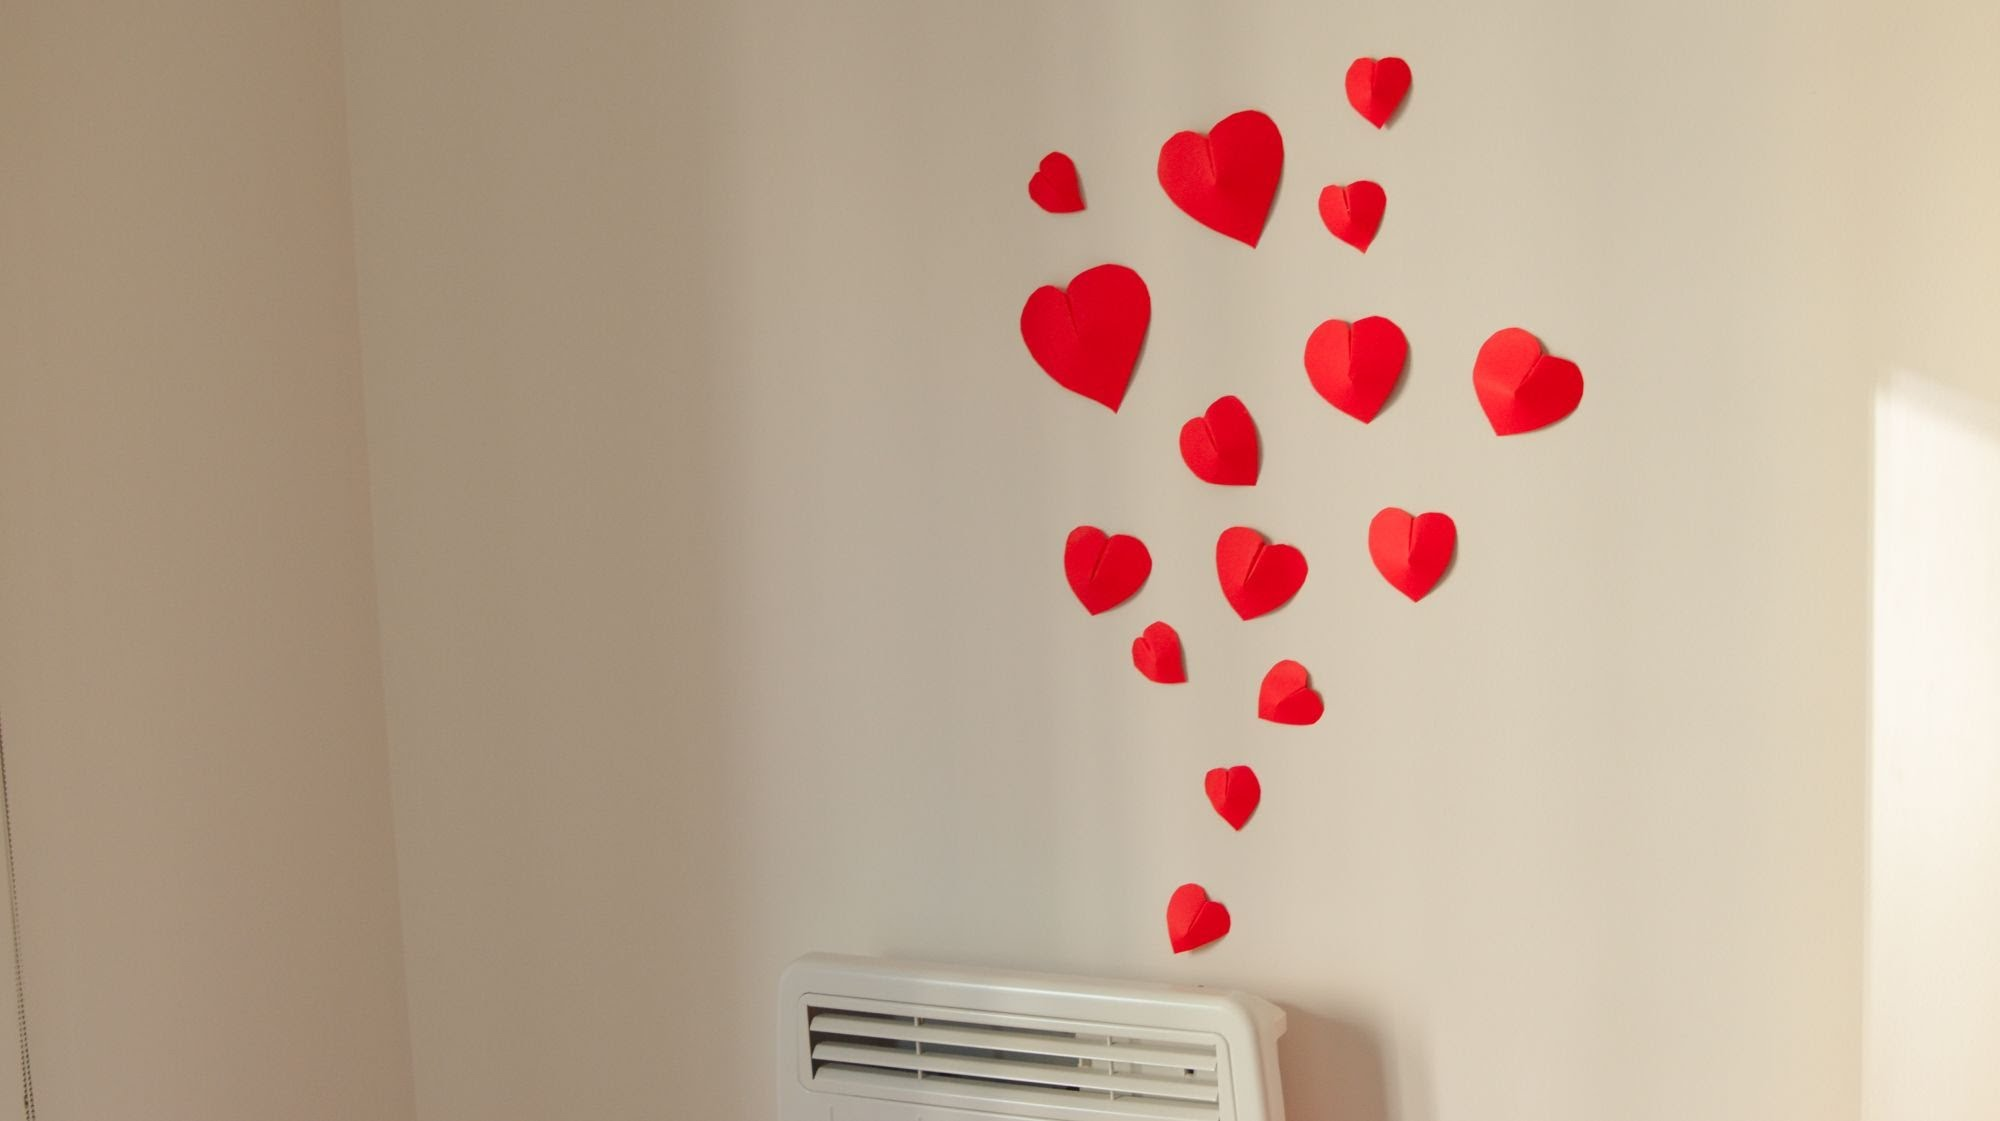 homemade wall decoration ideas for bedroom diy how to make simple 3d heart wall decoration in FHZPRYF